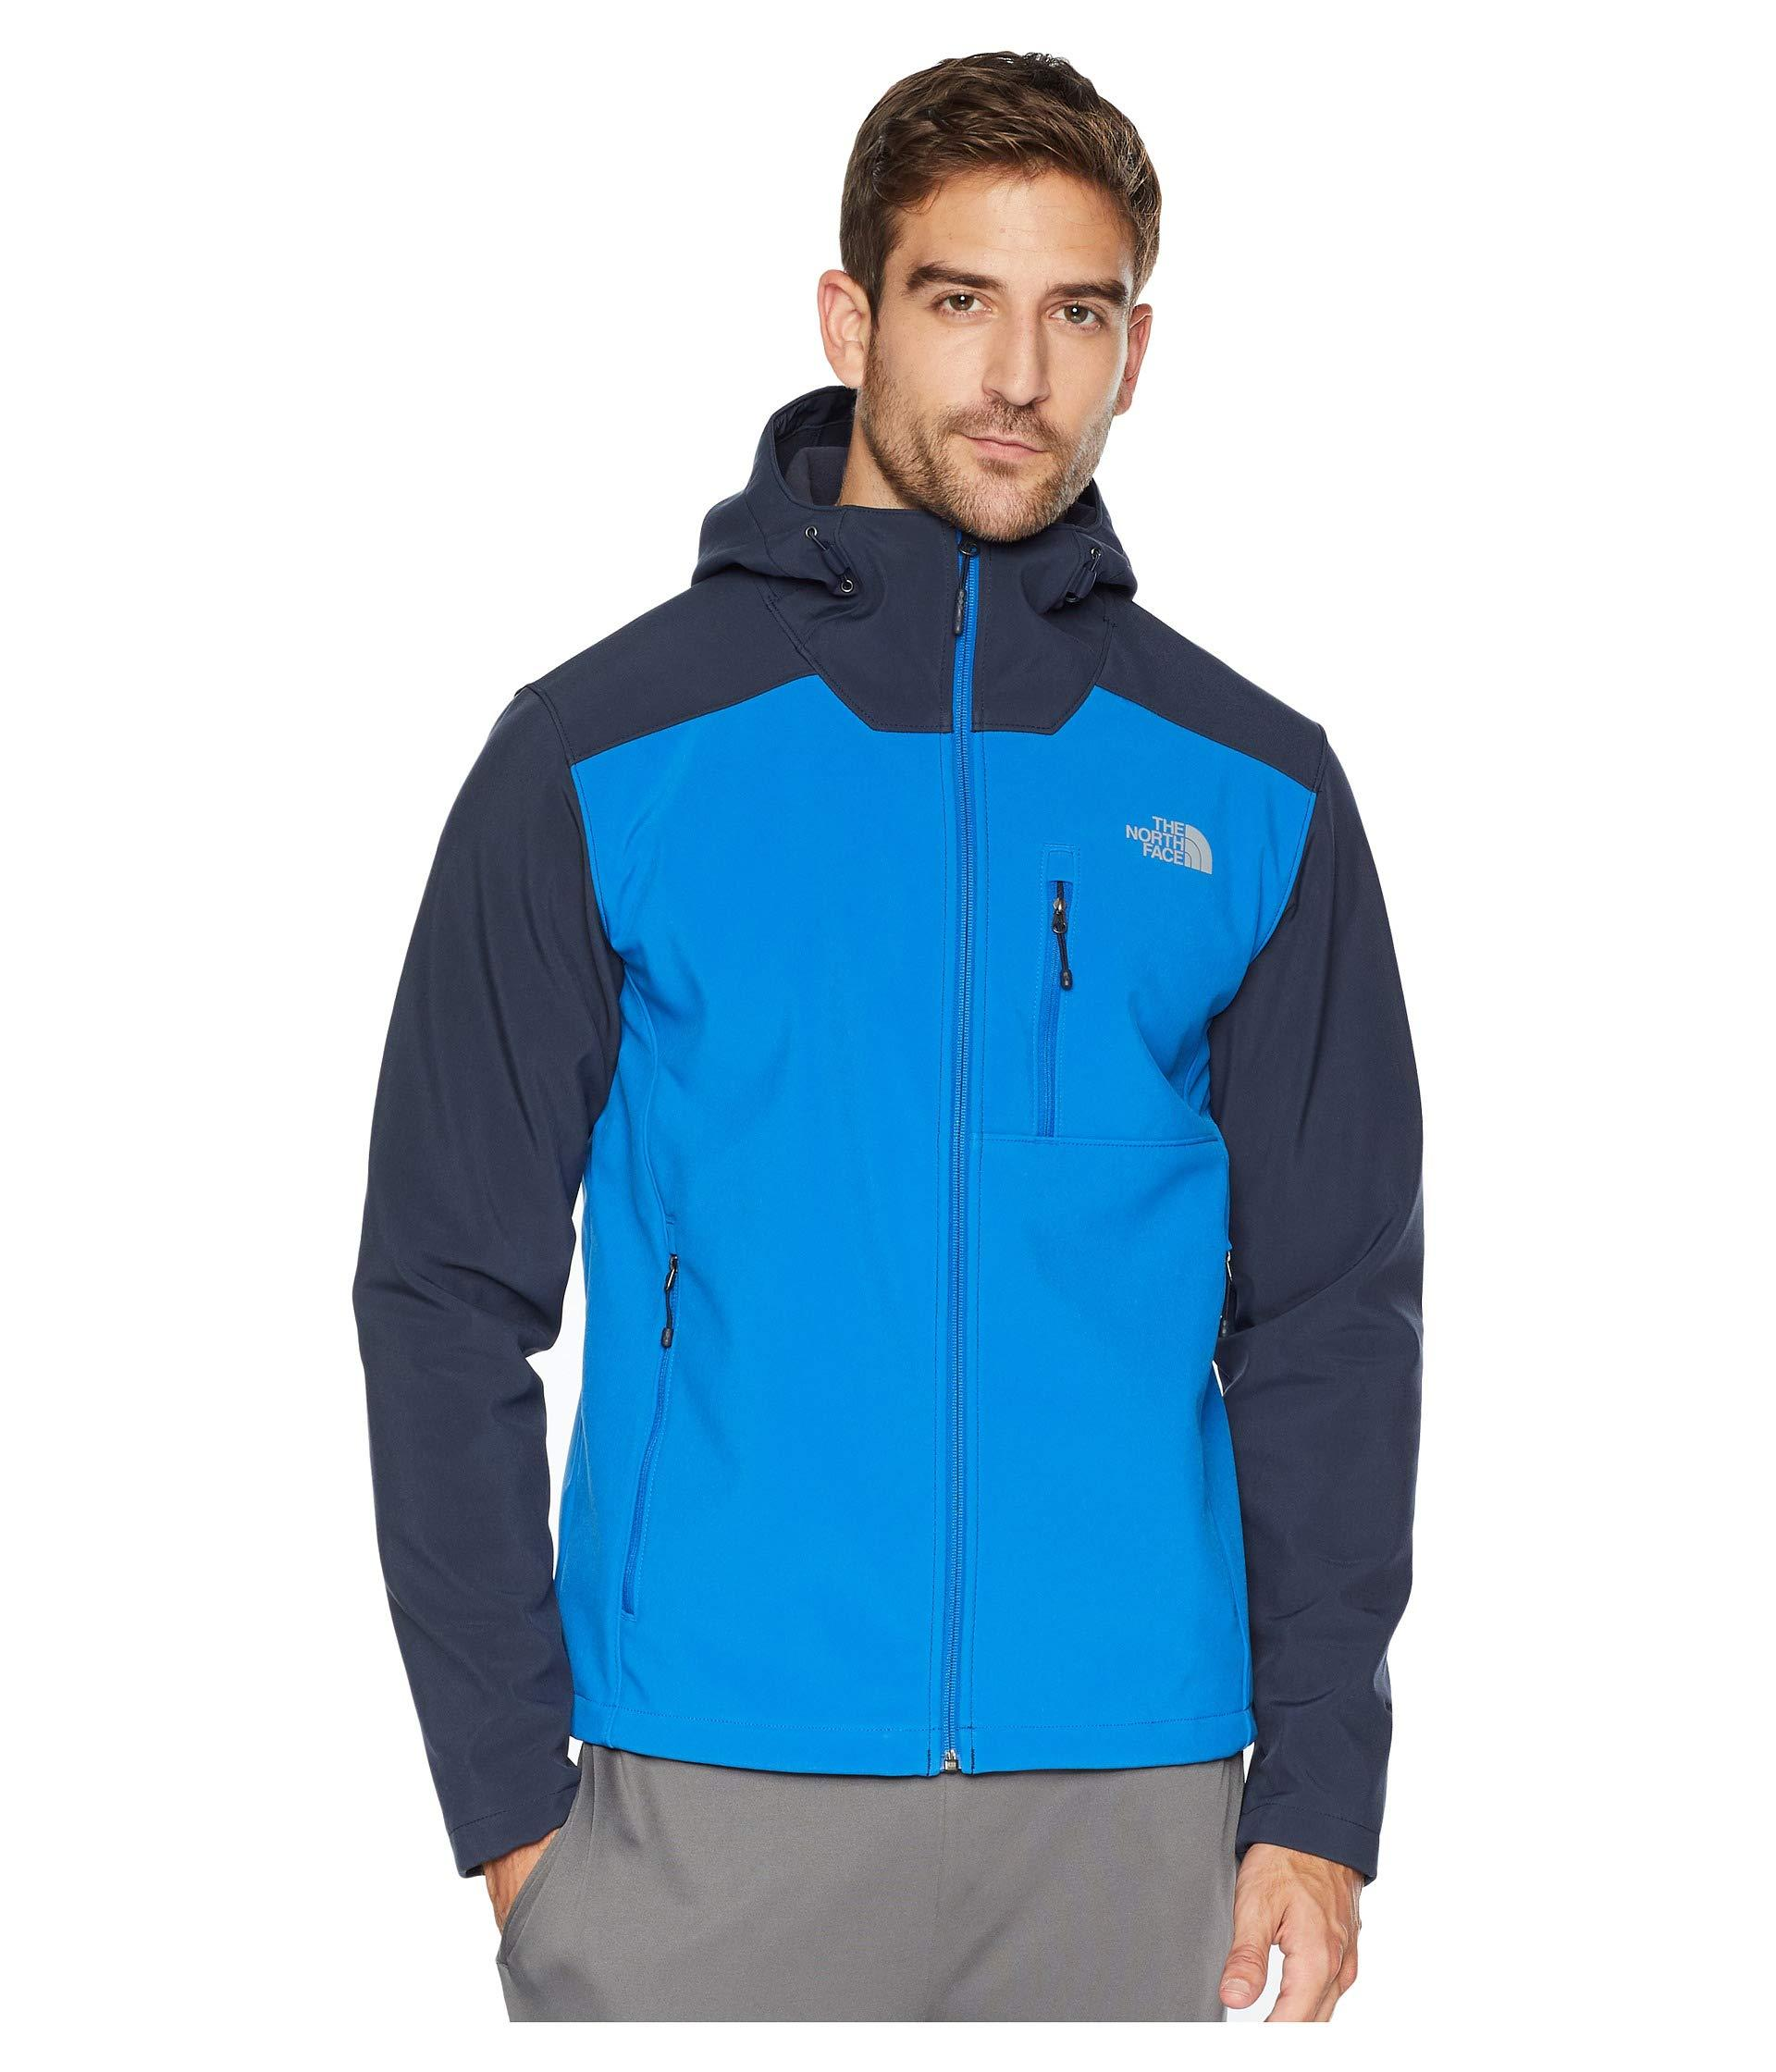 d5803ca56 Lyst - The North Face Apex Bionic 2 Hoodie in Blue for Men - Save 15%